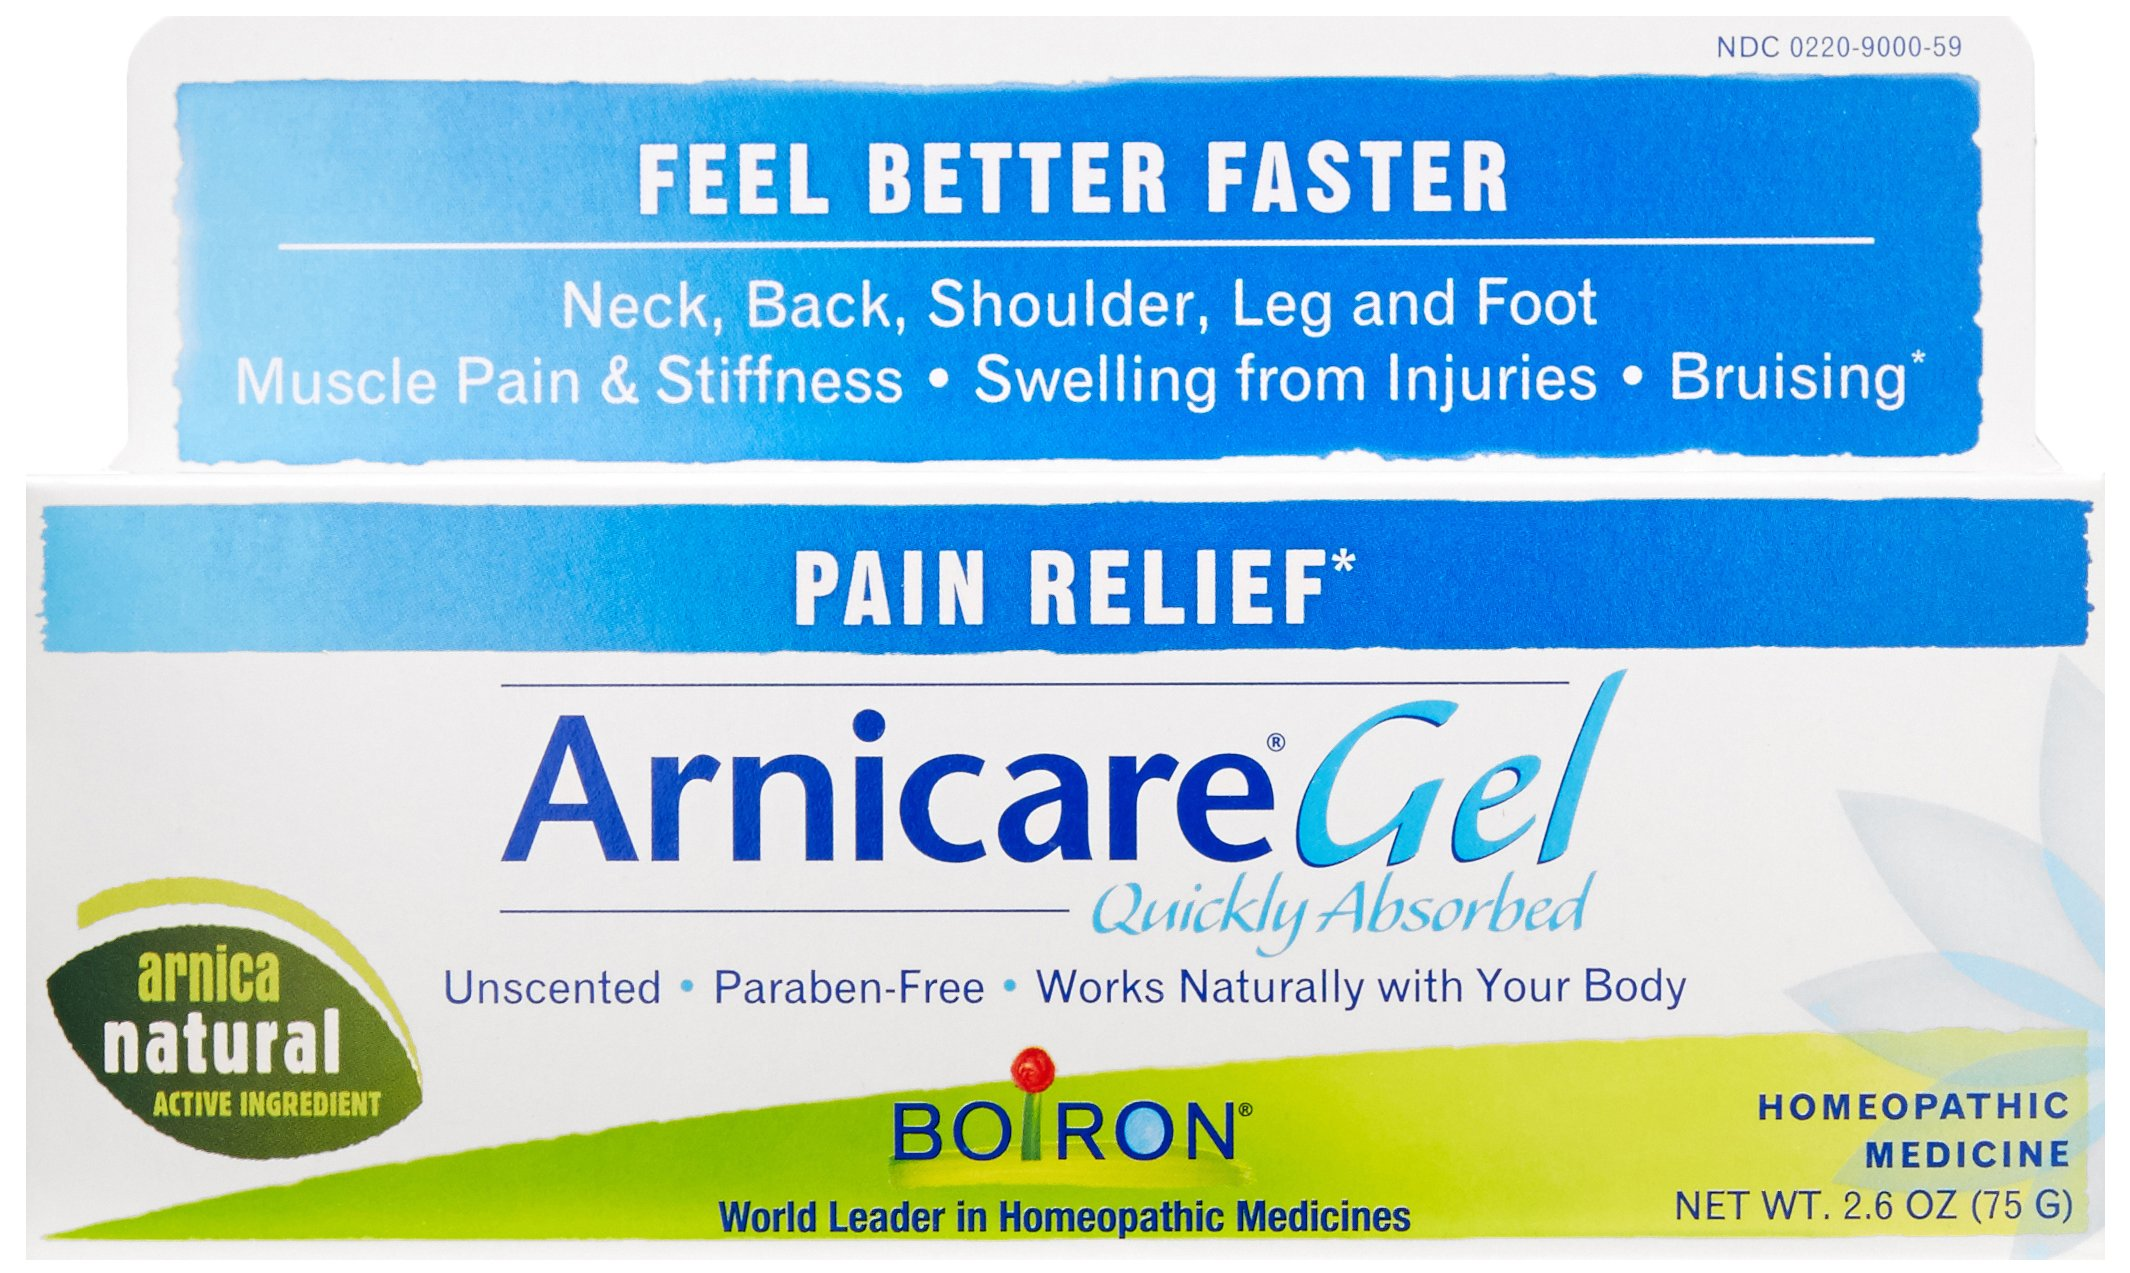 Boiron Arnica Gel for Pain Relief, 2.6 Ounce, Topical Analgesic for Neck Pain, Back Pain, Shoulder Pain, Leg and Foot Pain, Muscle Pain, Joint Pain Relief, Arthritis. Natural Active Ingredient